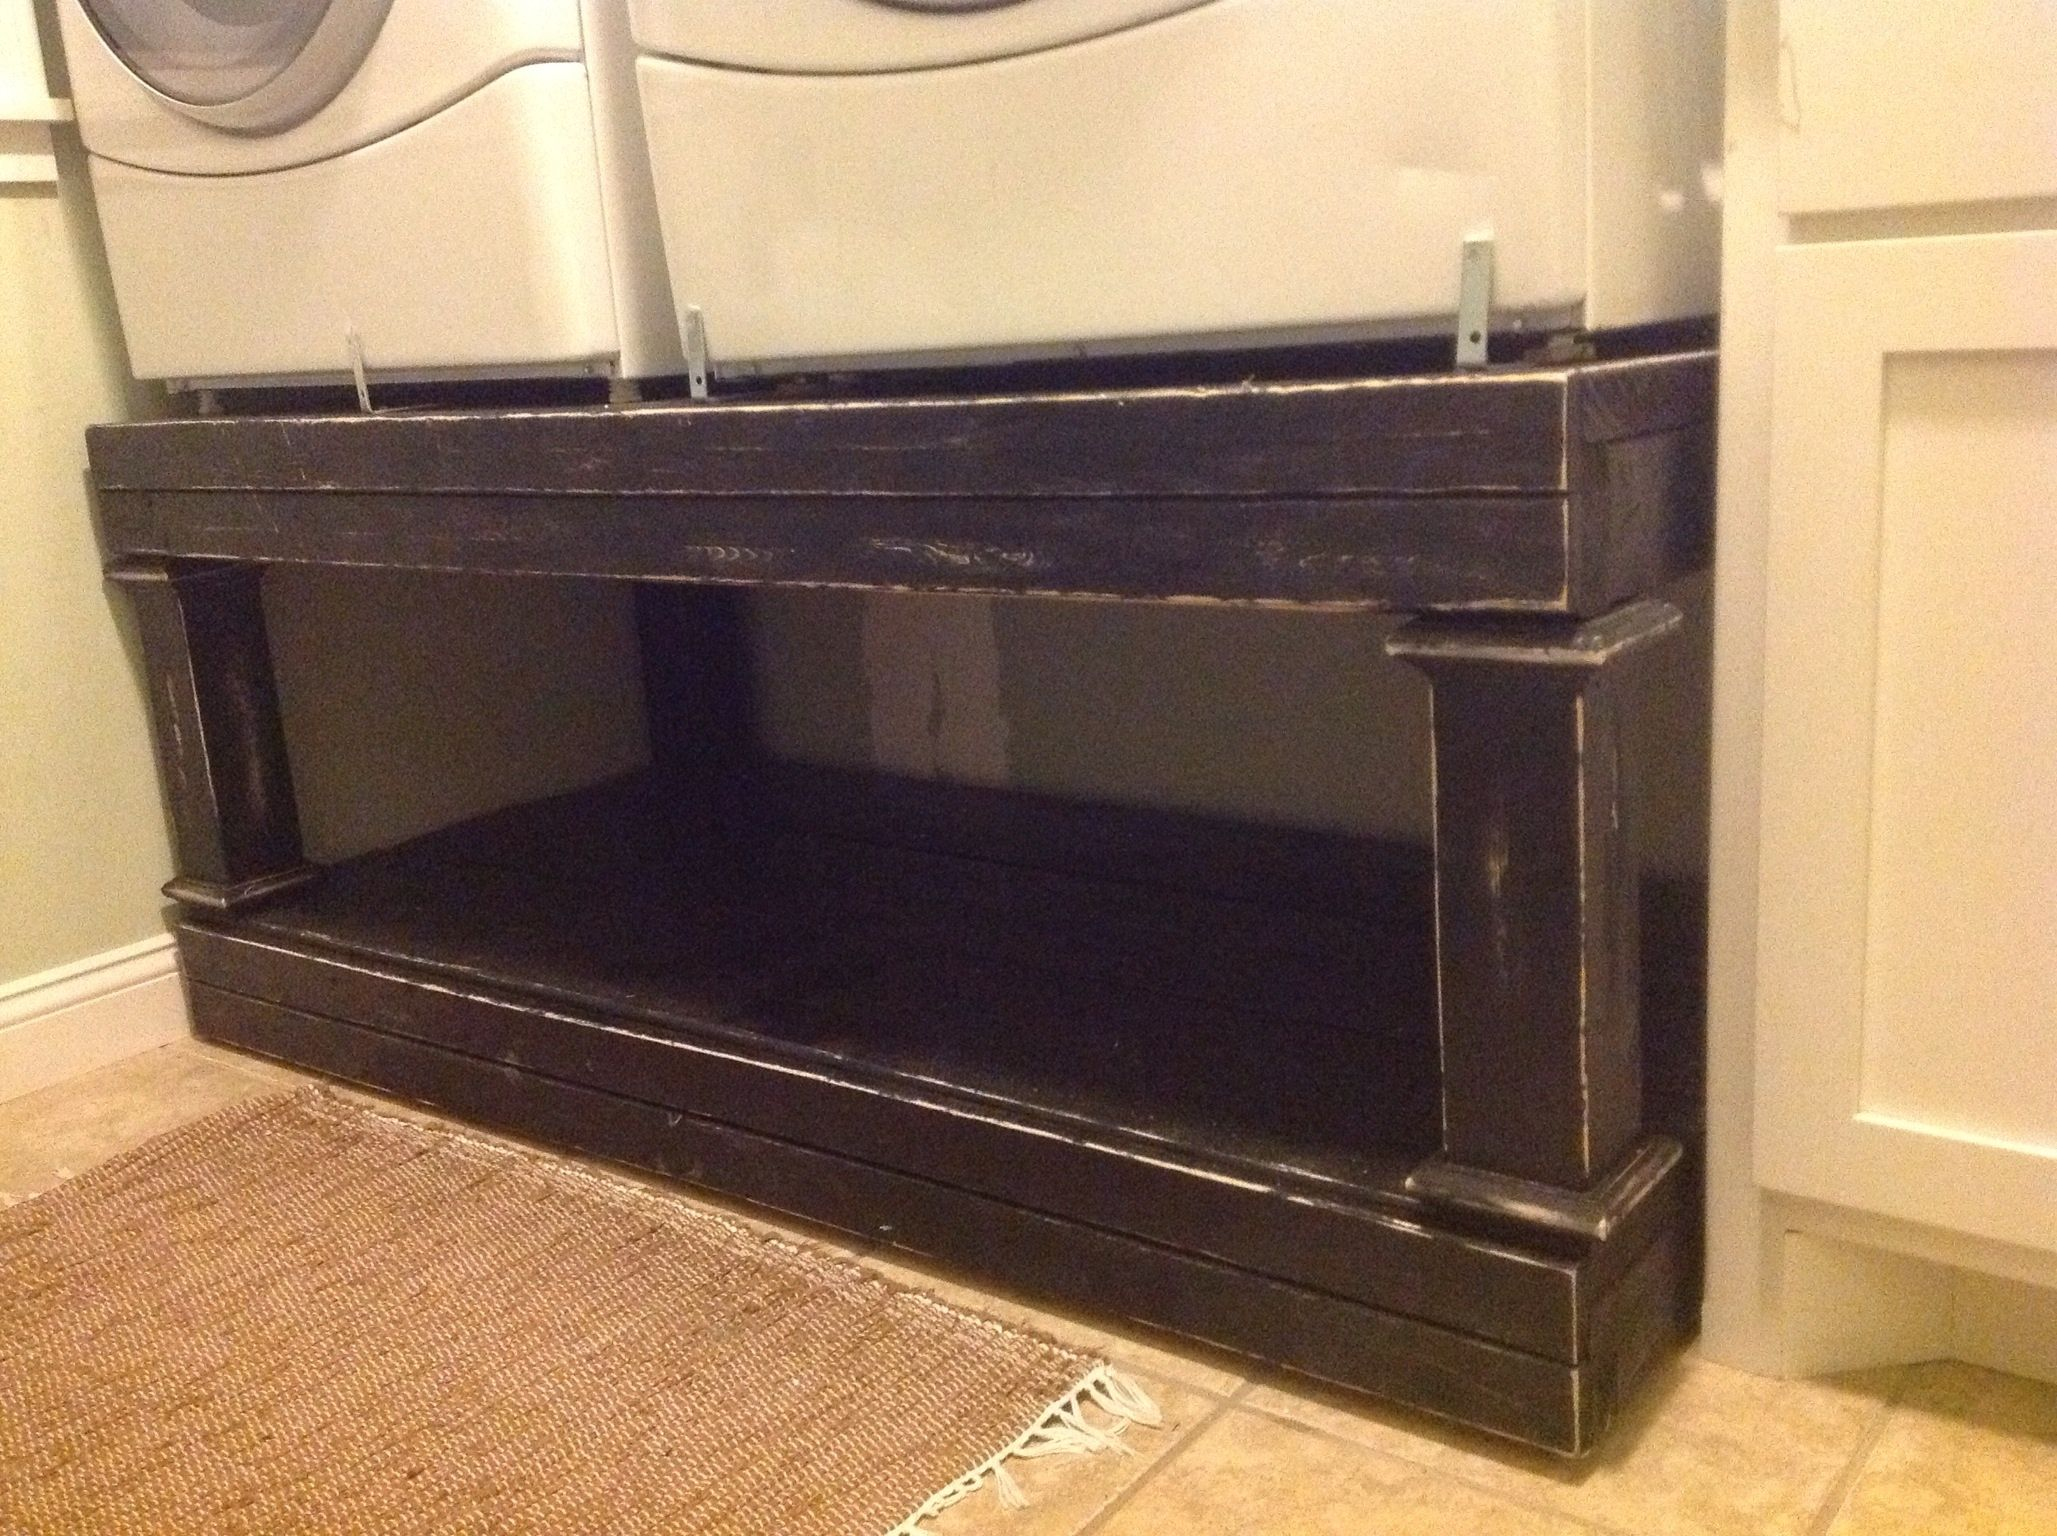 Work surface for washer and dryer - Homemade Washer And Dryer Pedestal Washer Dryer Pedestal Diy